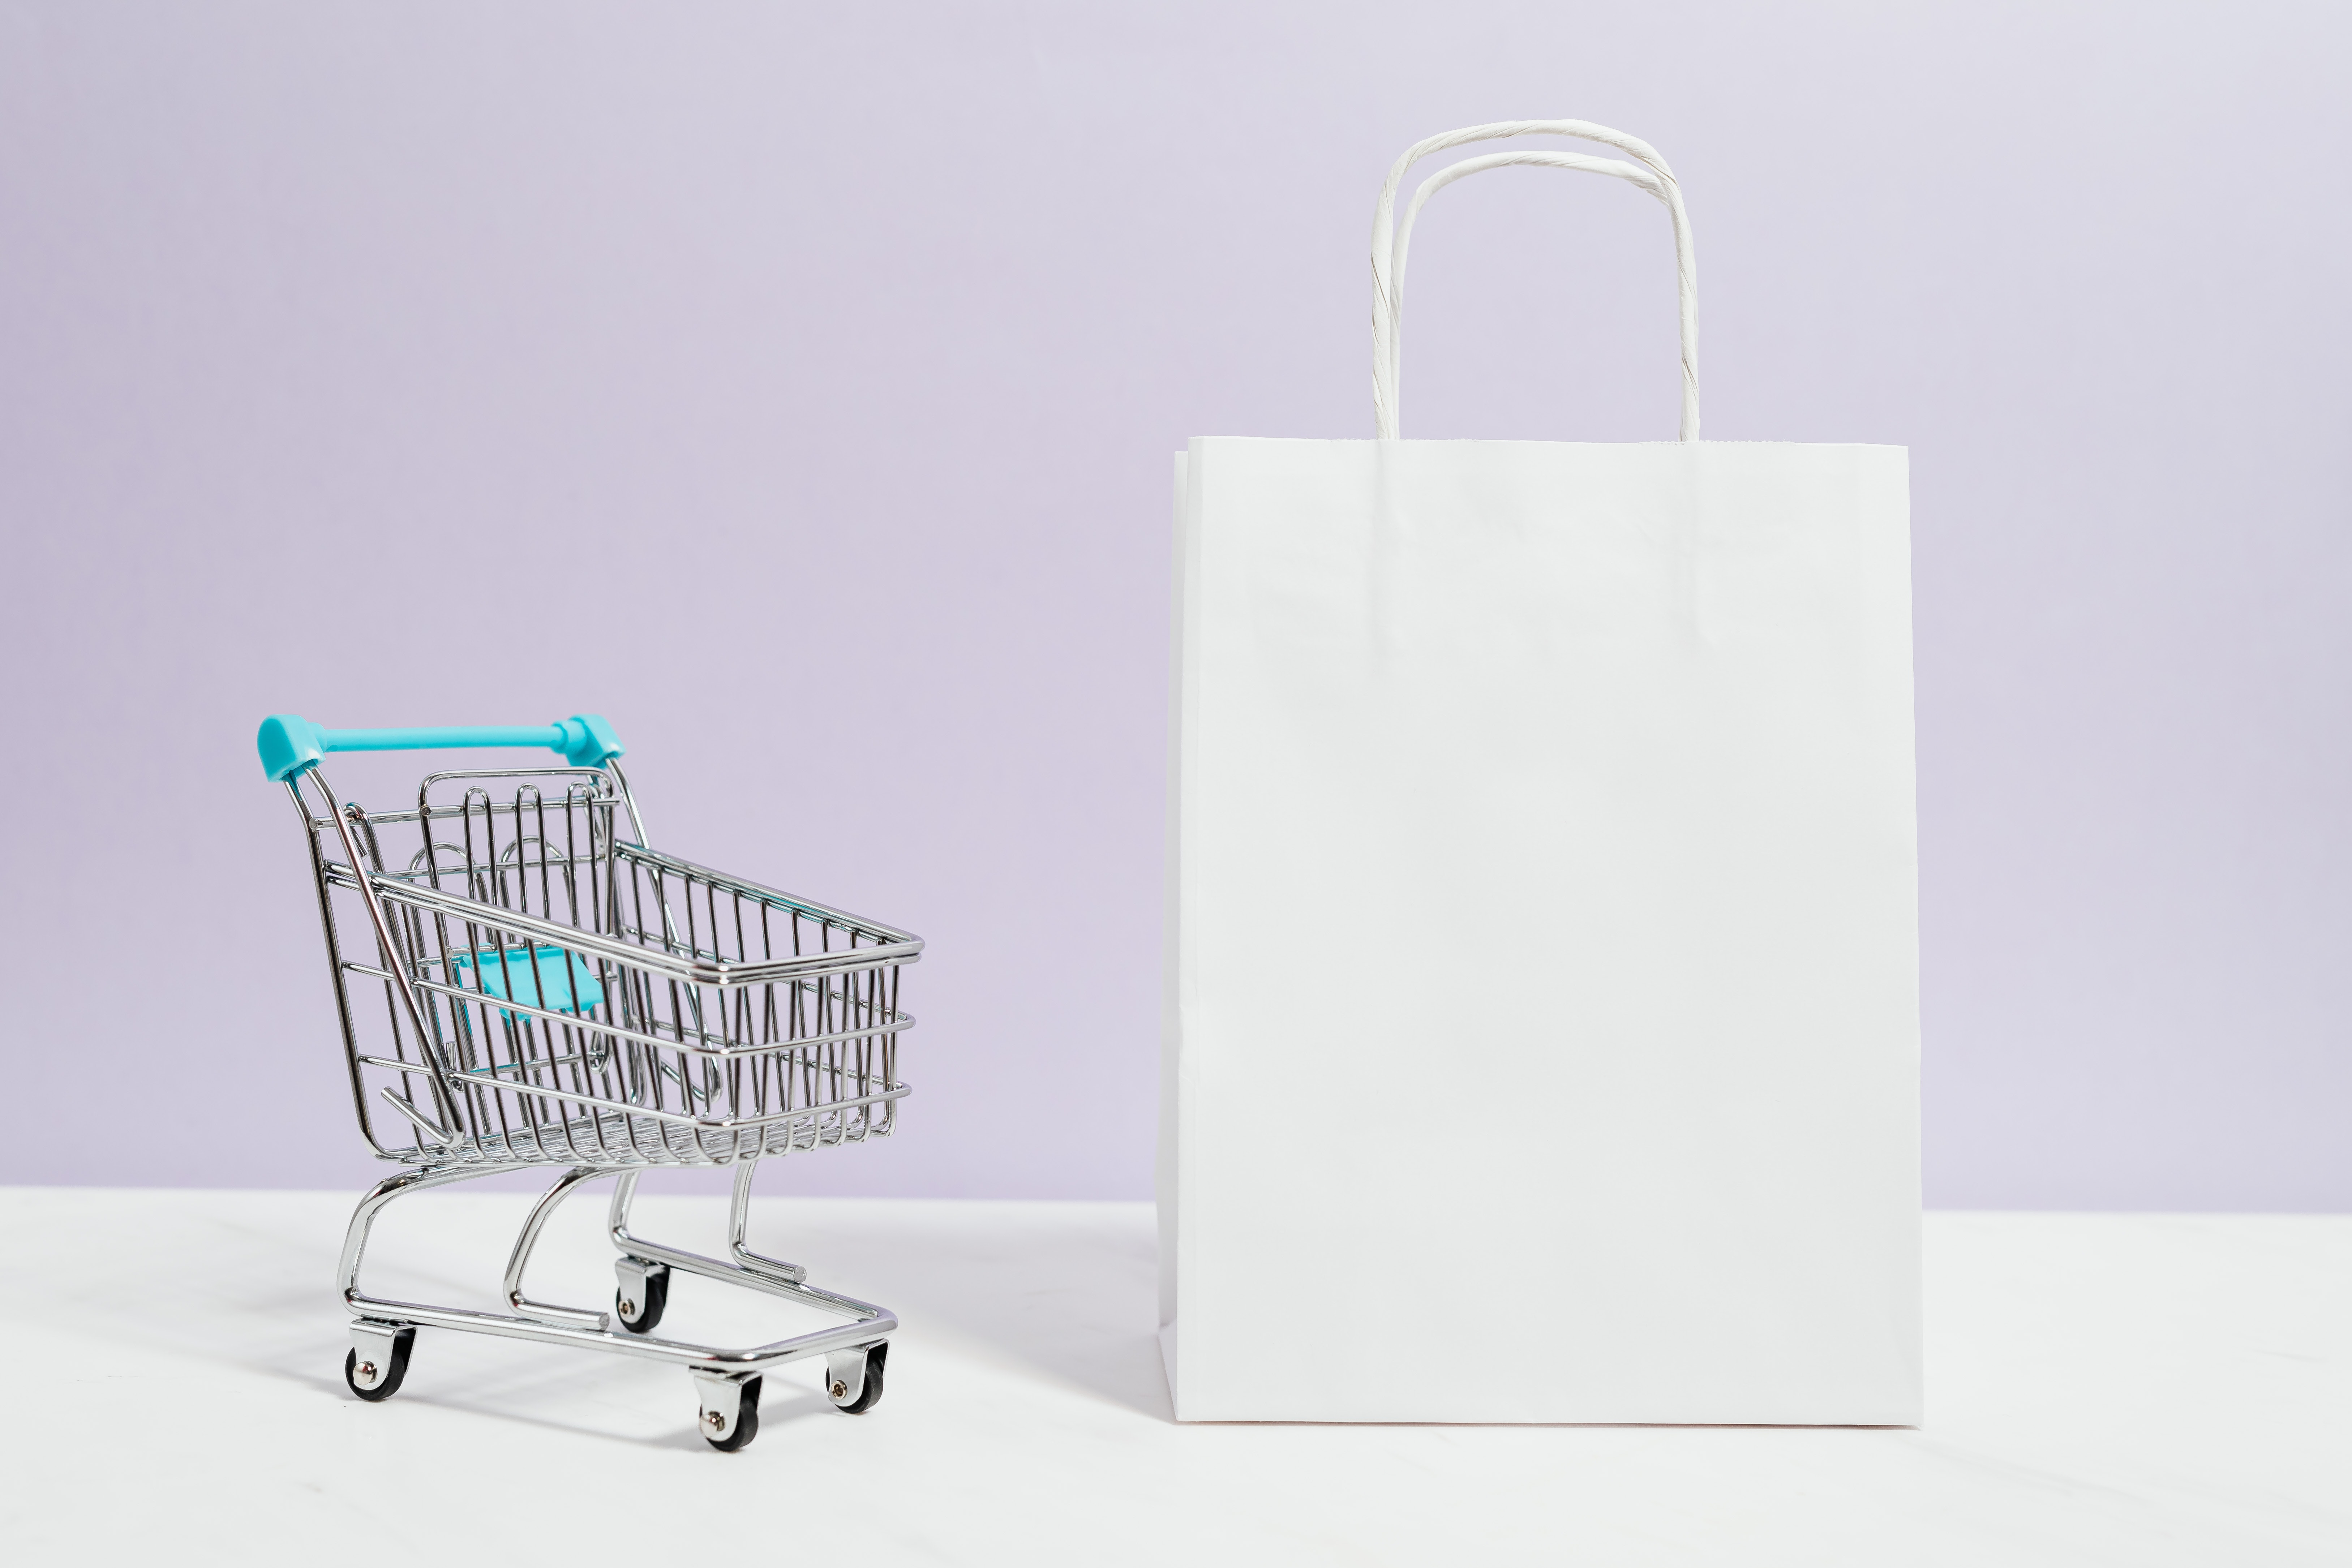 shopping trolley and grocery bag icon